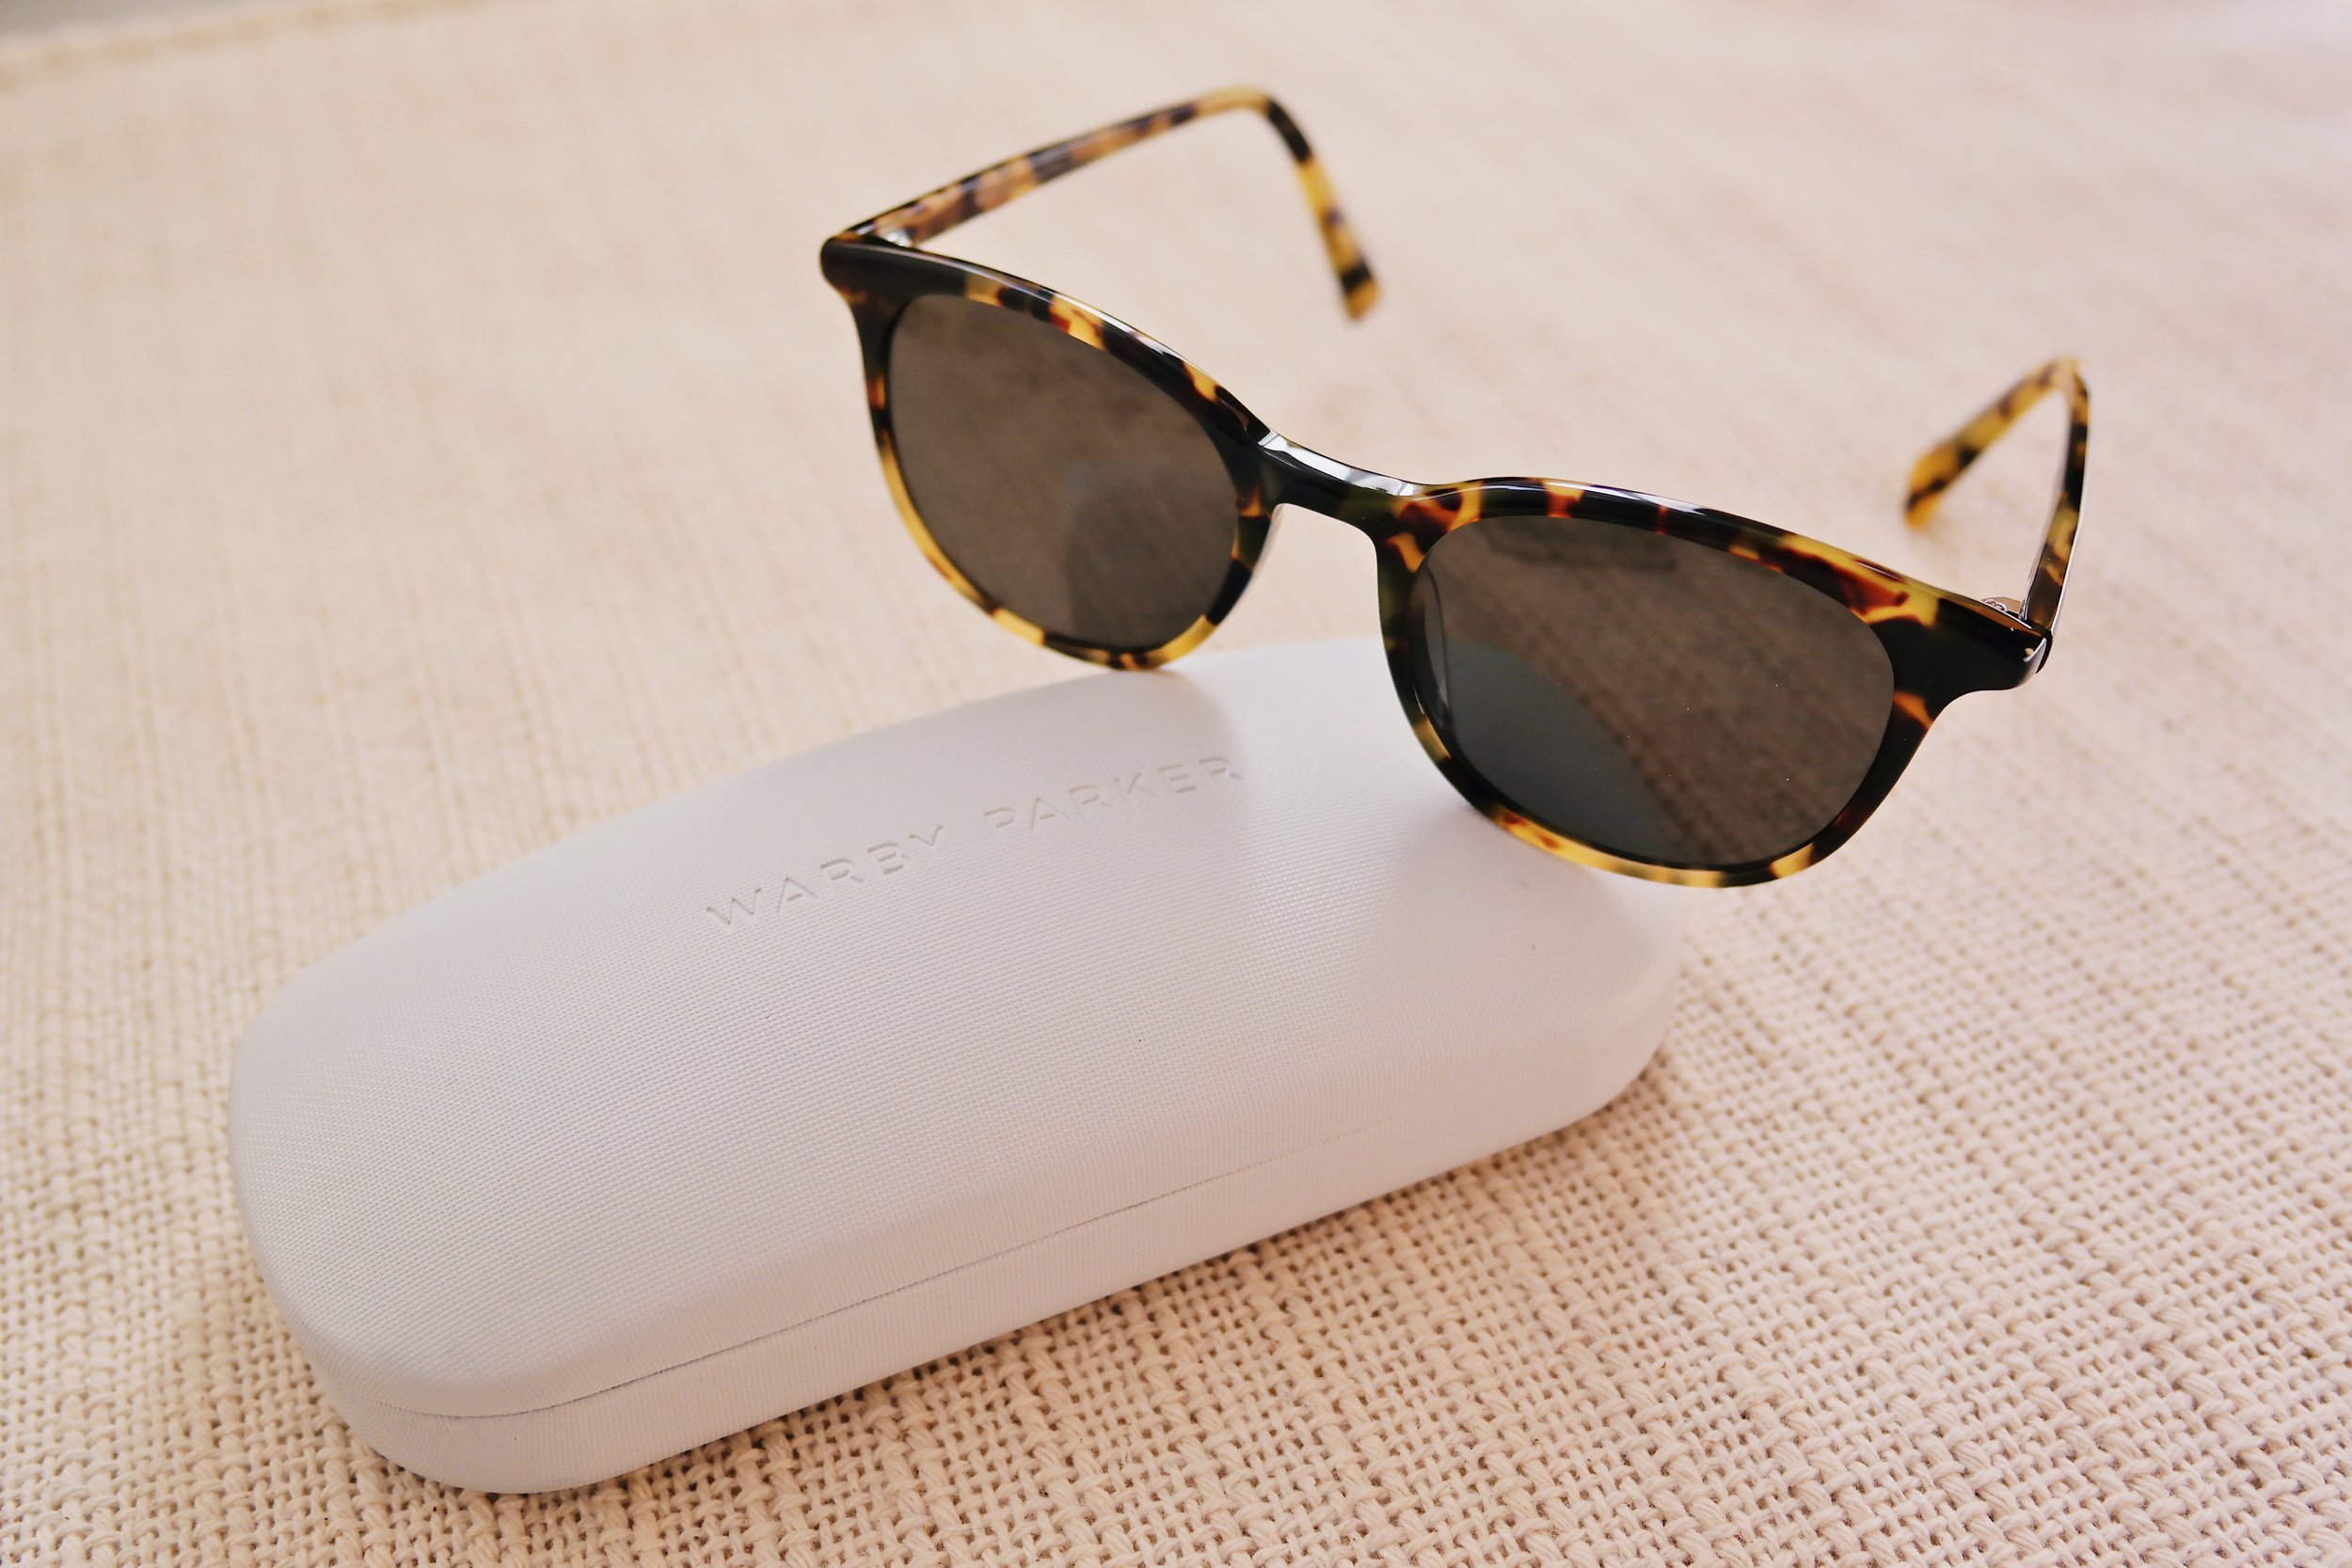 Durand Sunglasses in Woodland Tortoise , Warby Parker, $95.00